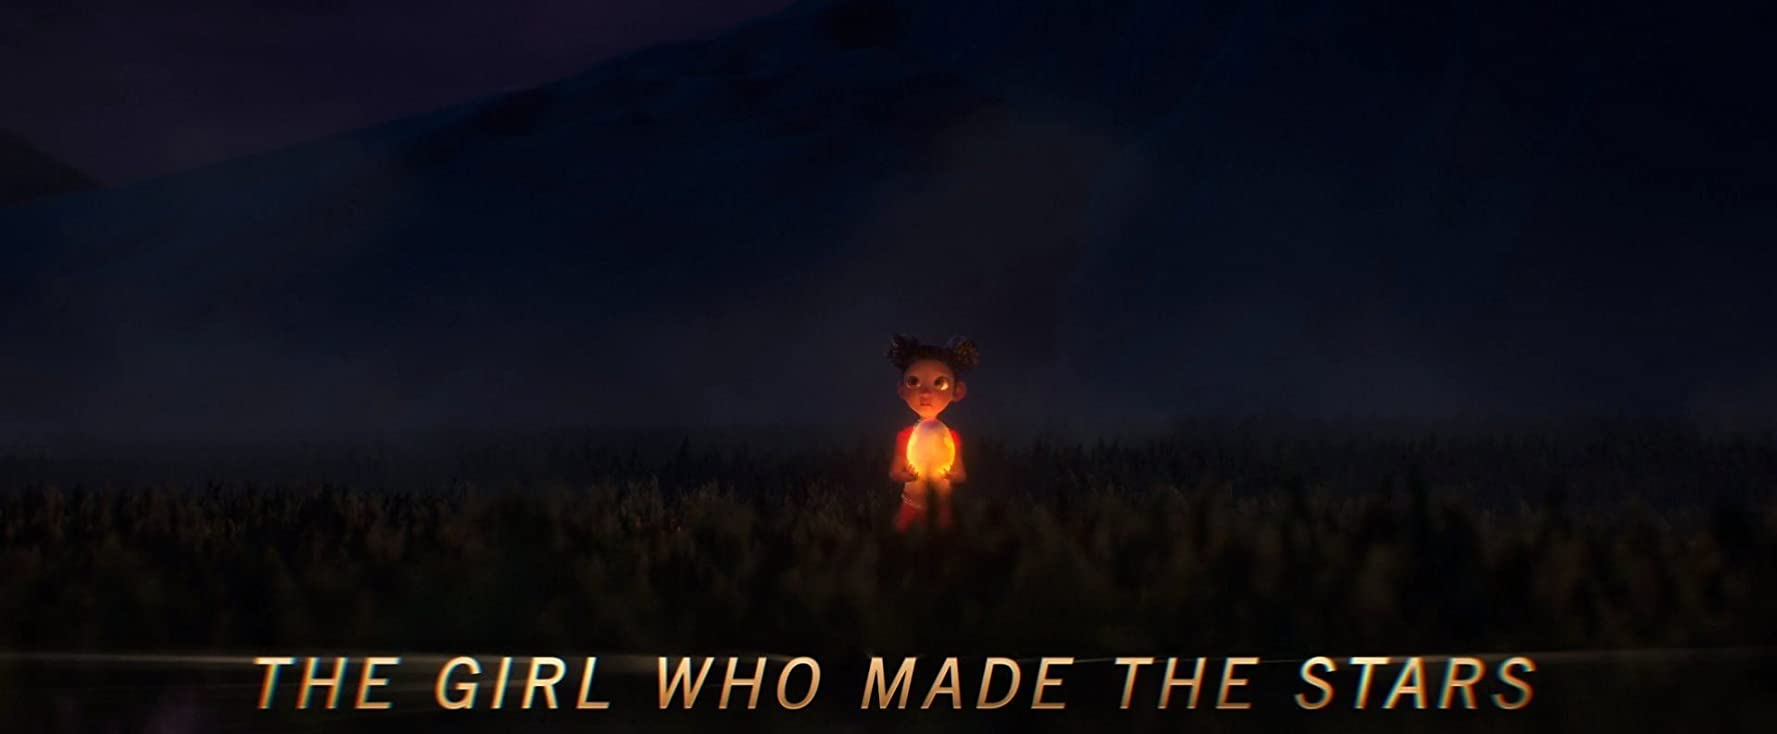 The Girl Who Made the Stars (2019)